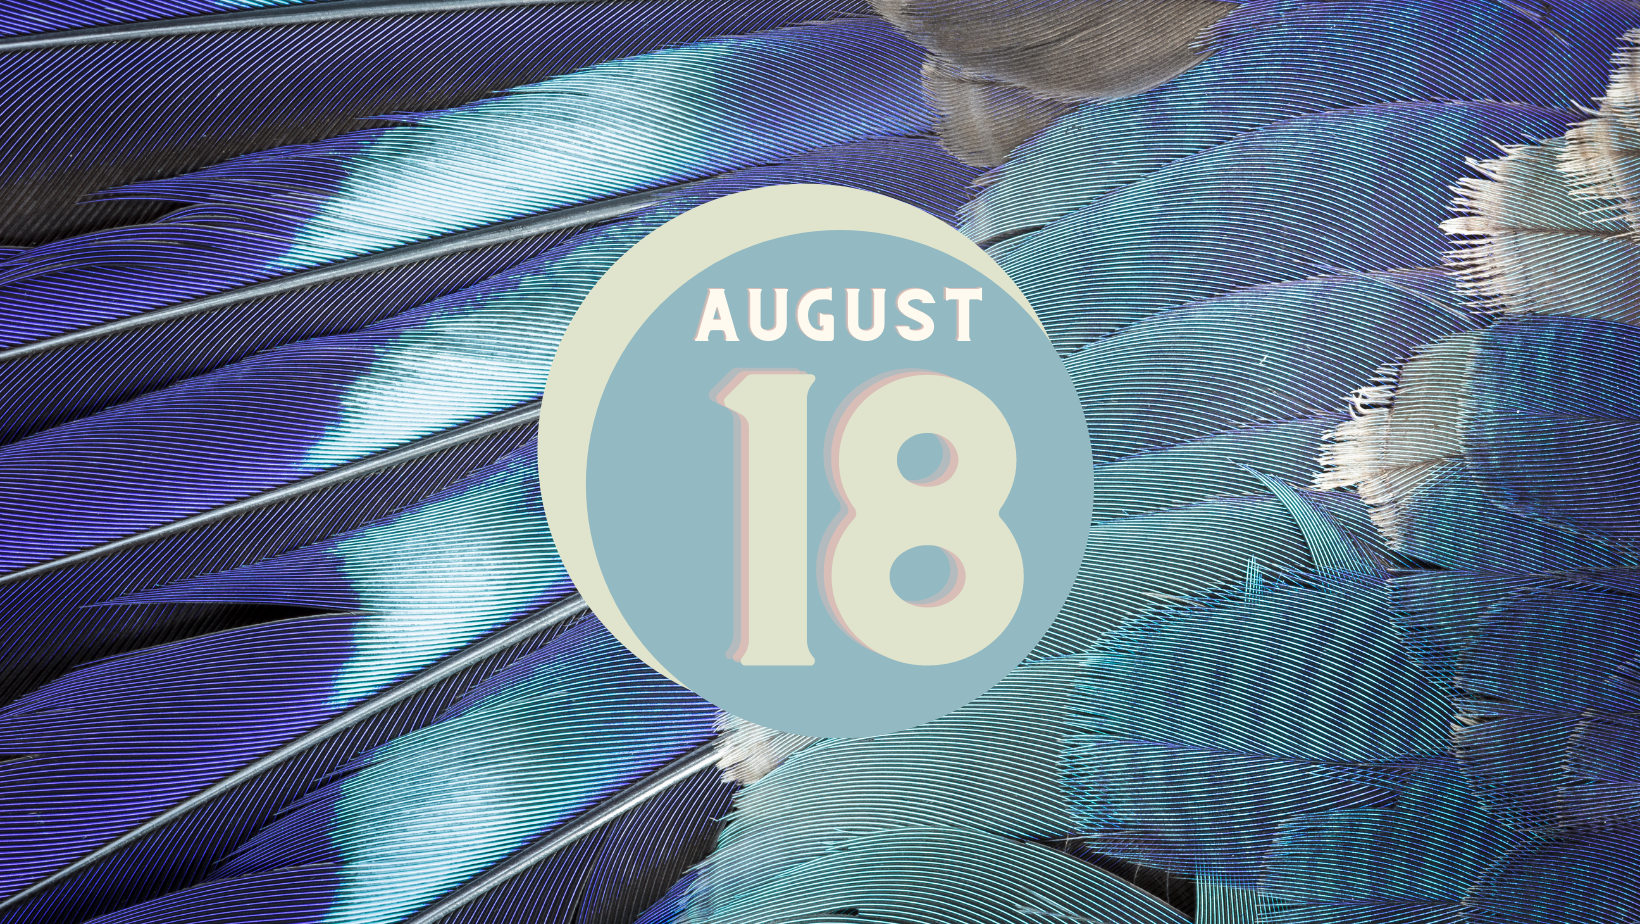 blue and grey feathers background, text reads August 18